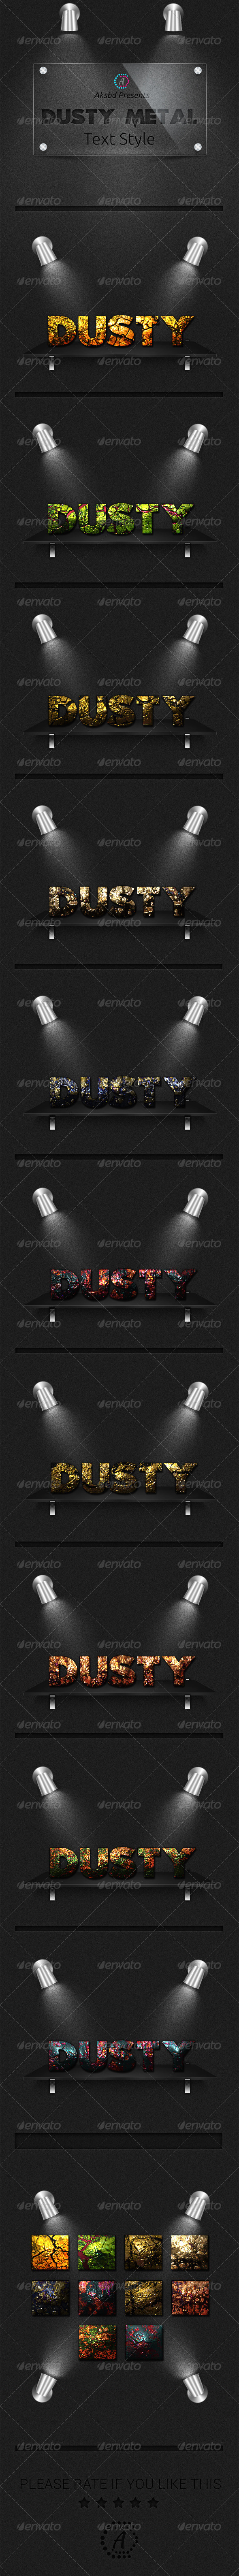 GraphicRiver Dusty Metal Text Style 10 UHD Styles 8136082